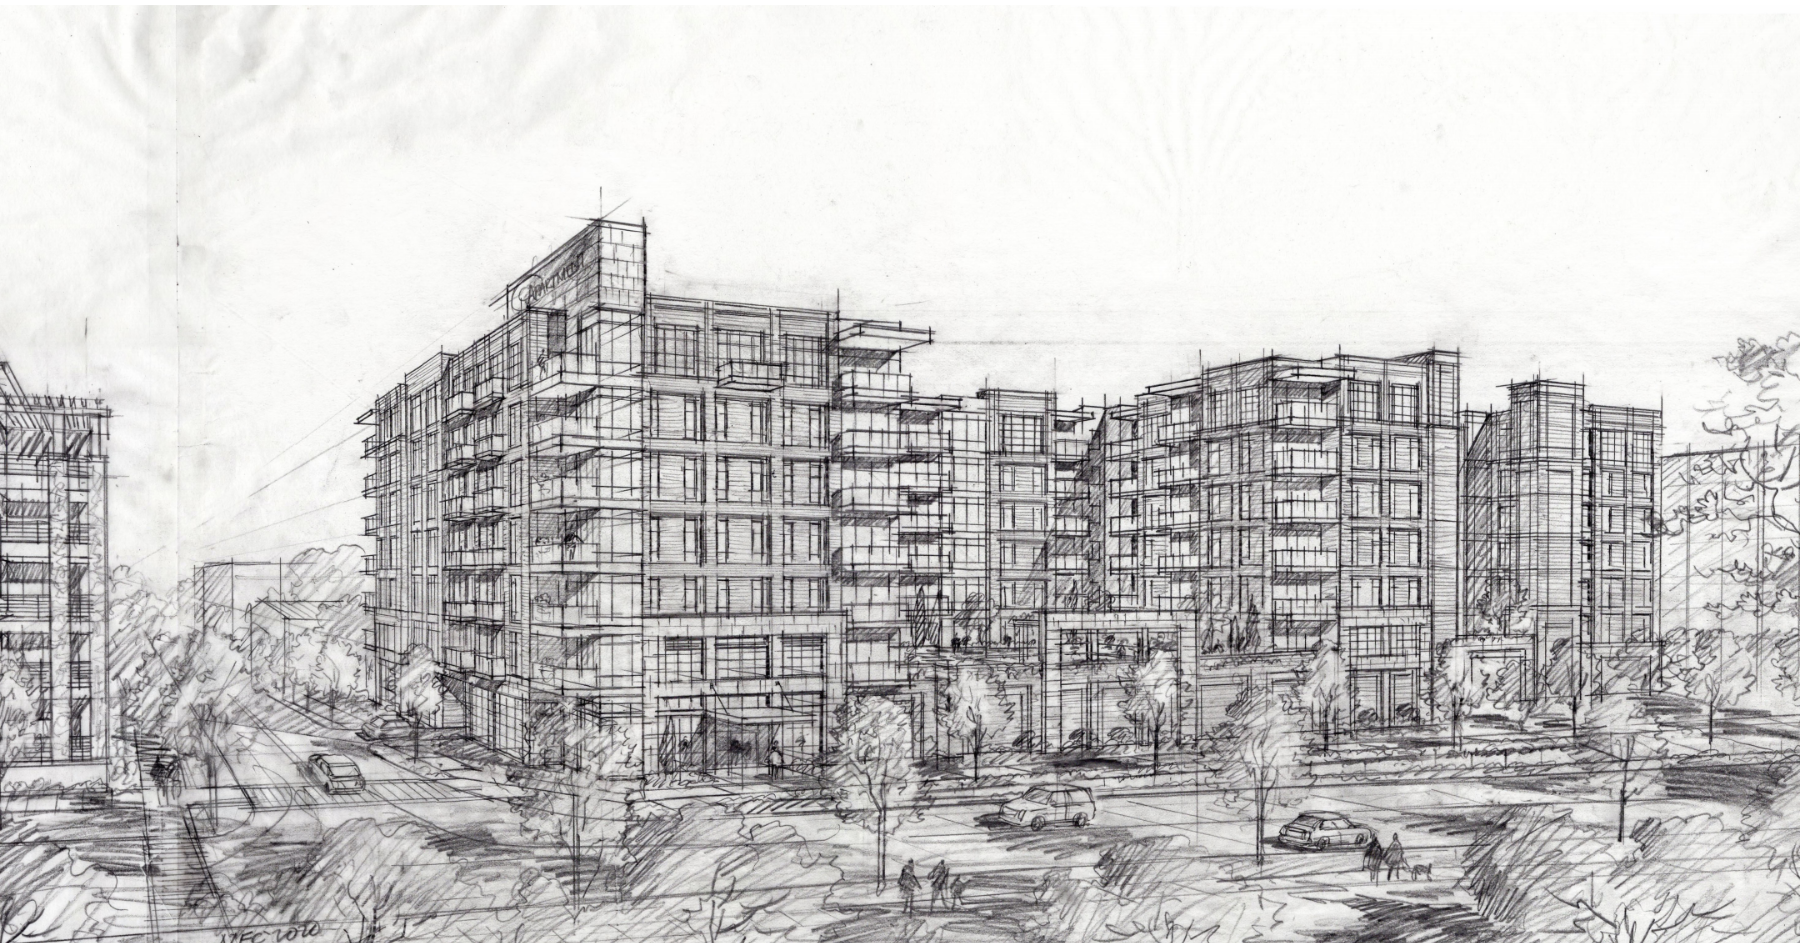 A rough sketch of a seven story, modern-style apartment building.